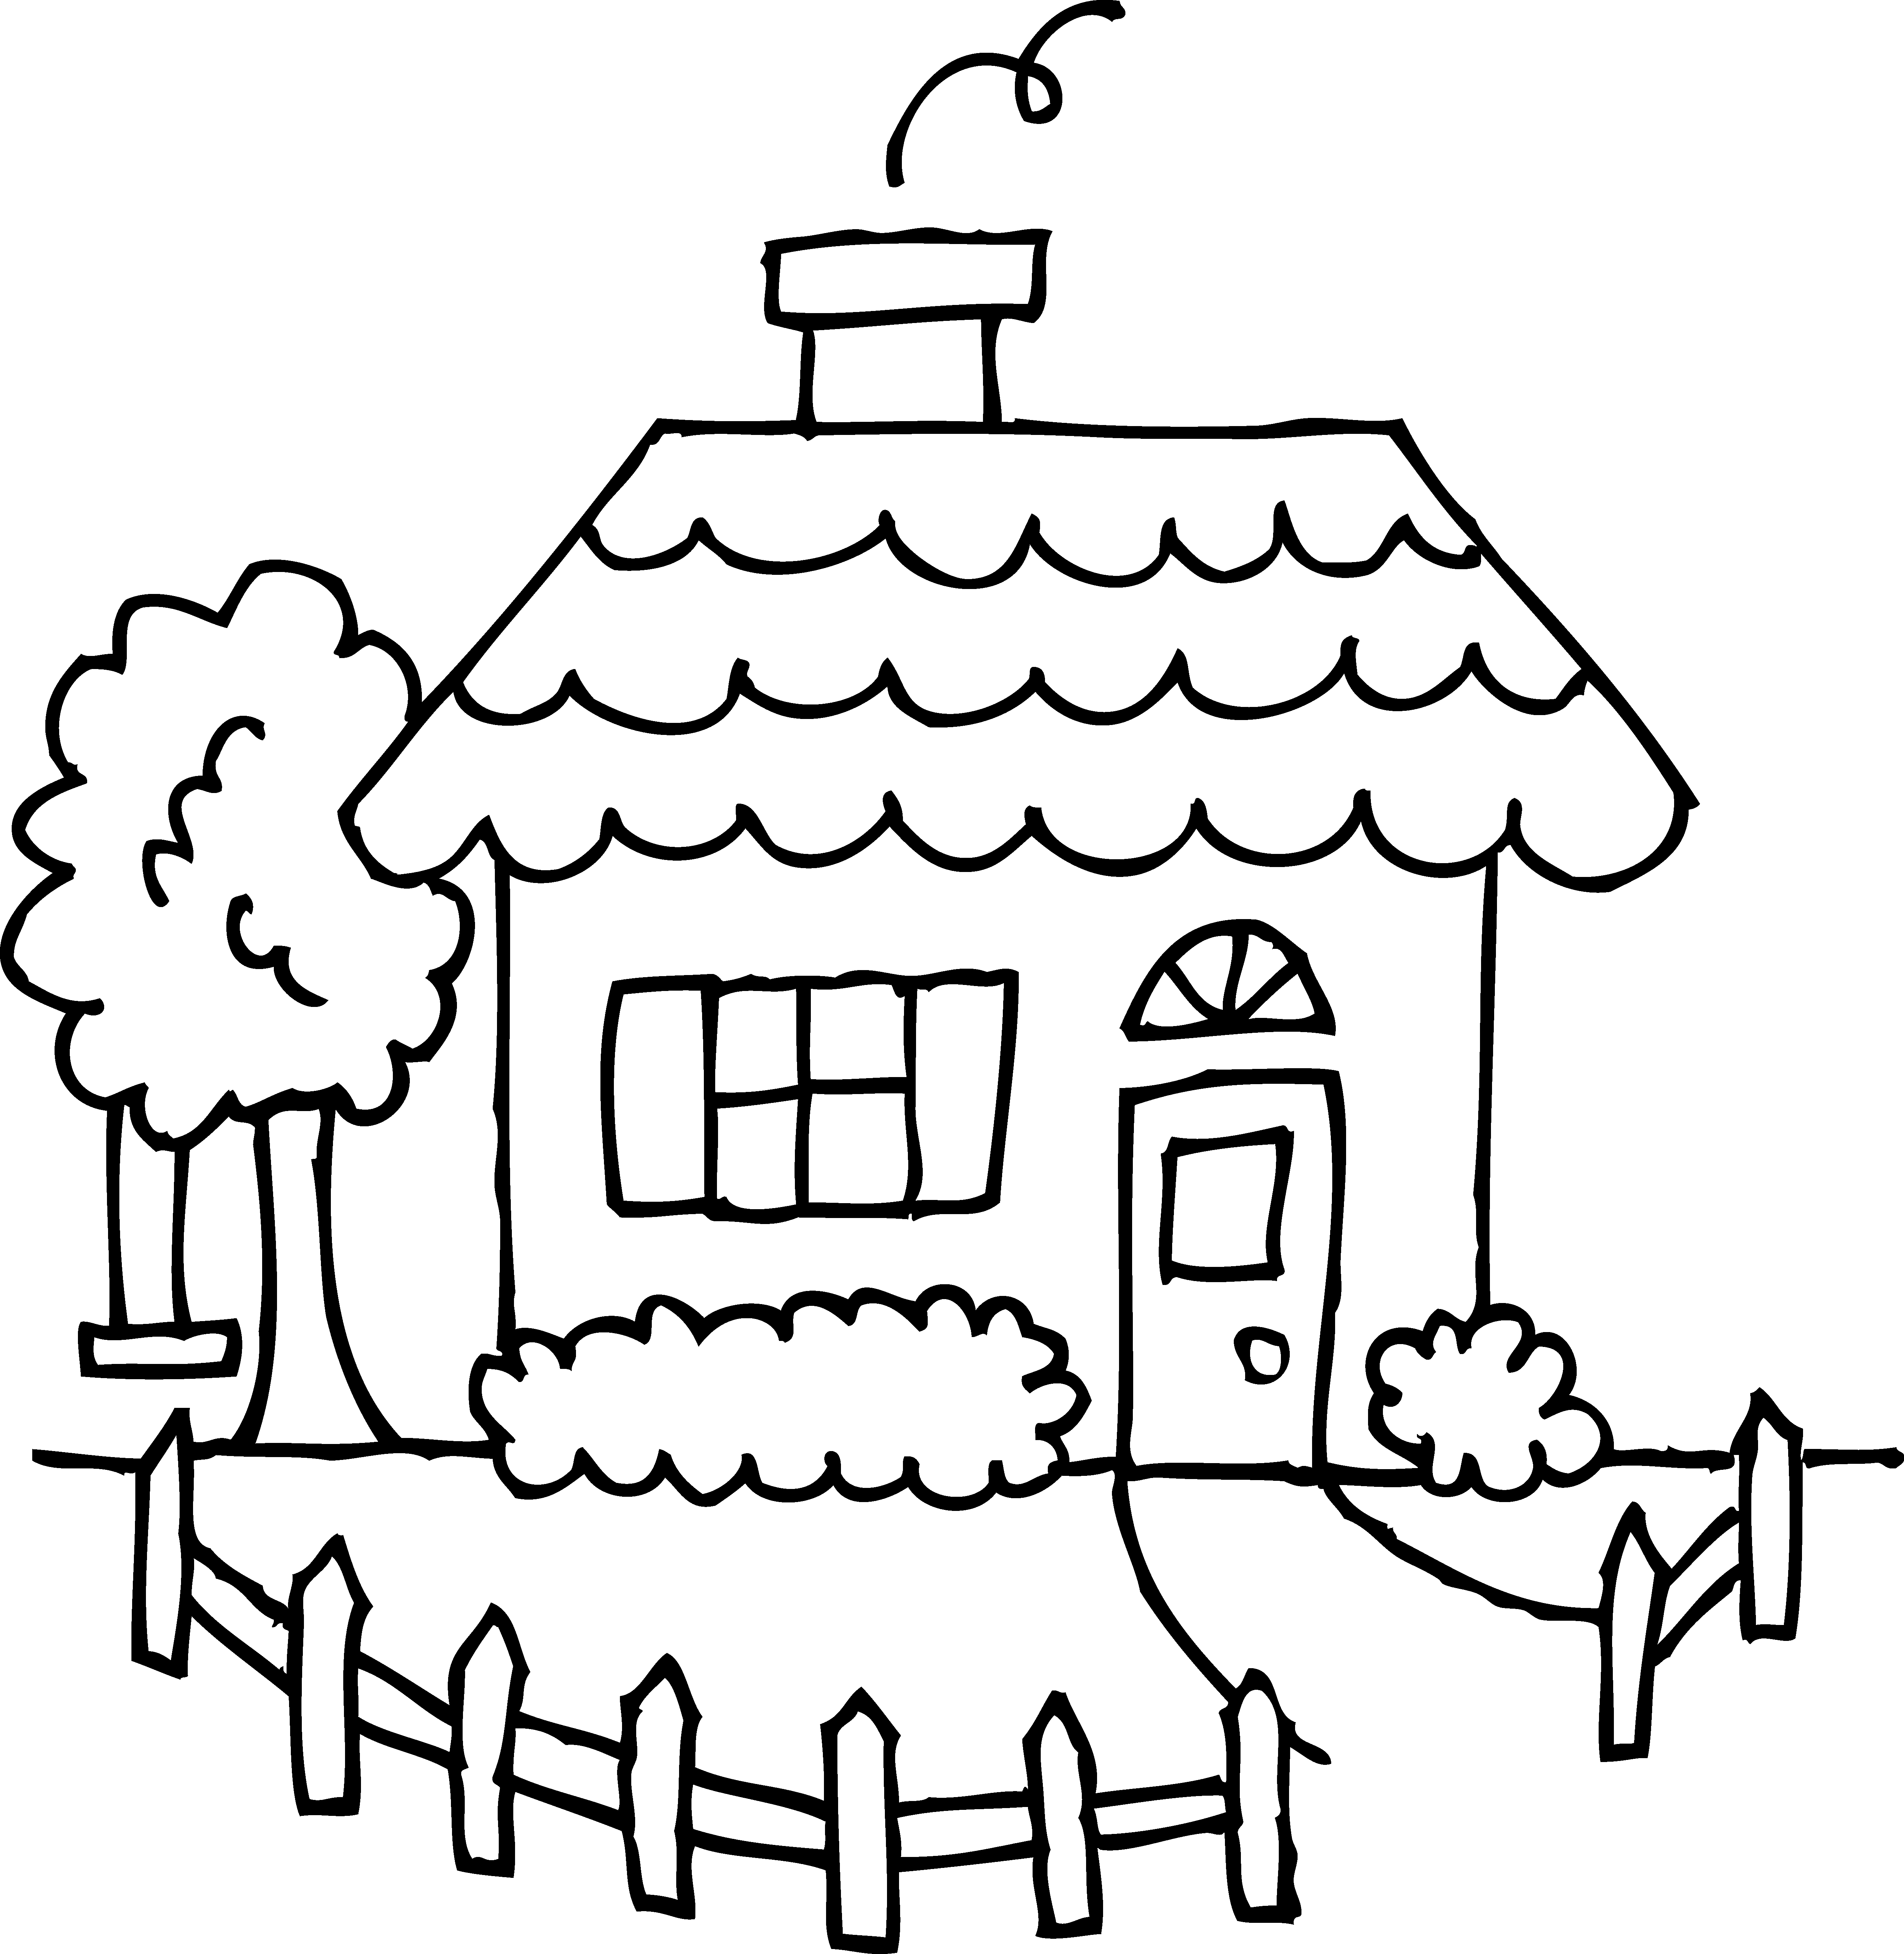 Preschool house clipart vector free stock 28+ Collection of House Clipart Black And White | High quality, free ... vector free stock